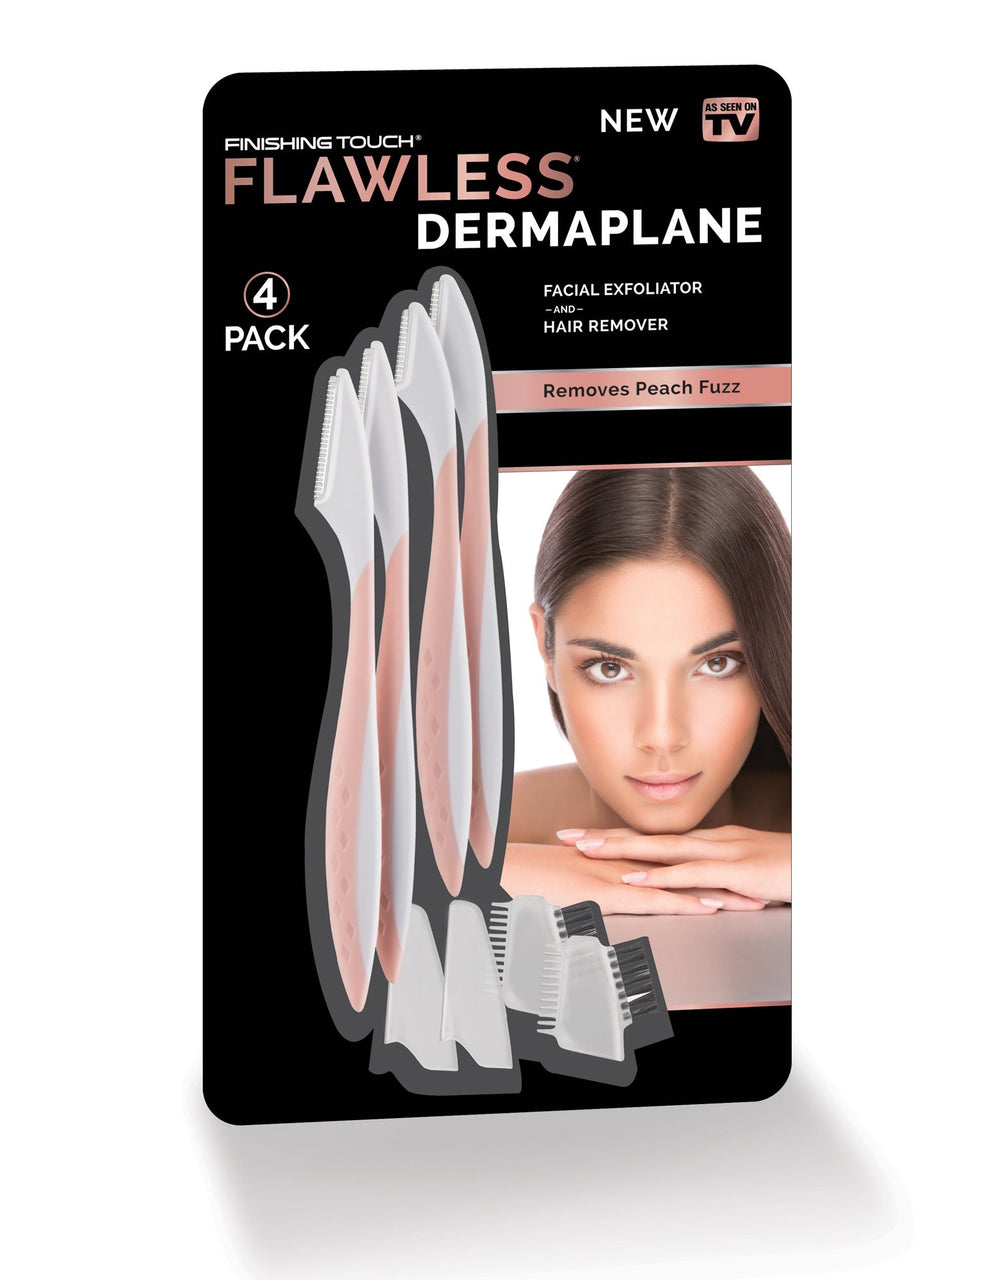 Finishing Touch Flawless Dermaplane Facial Exfoliator Hair Remover